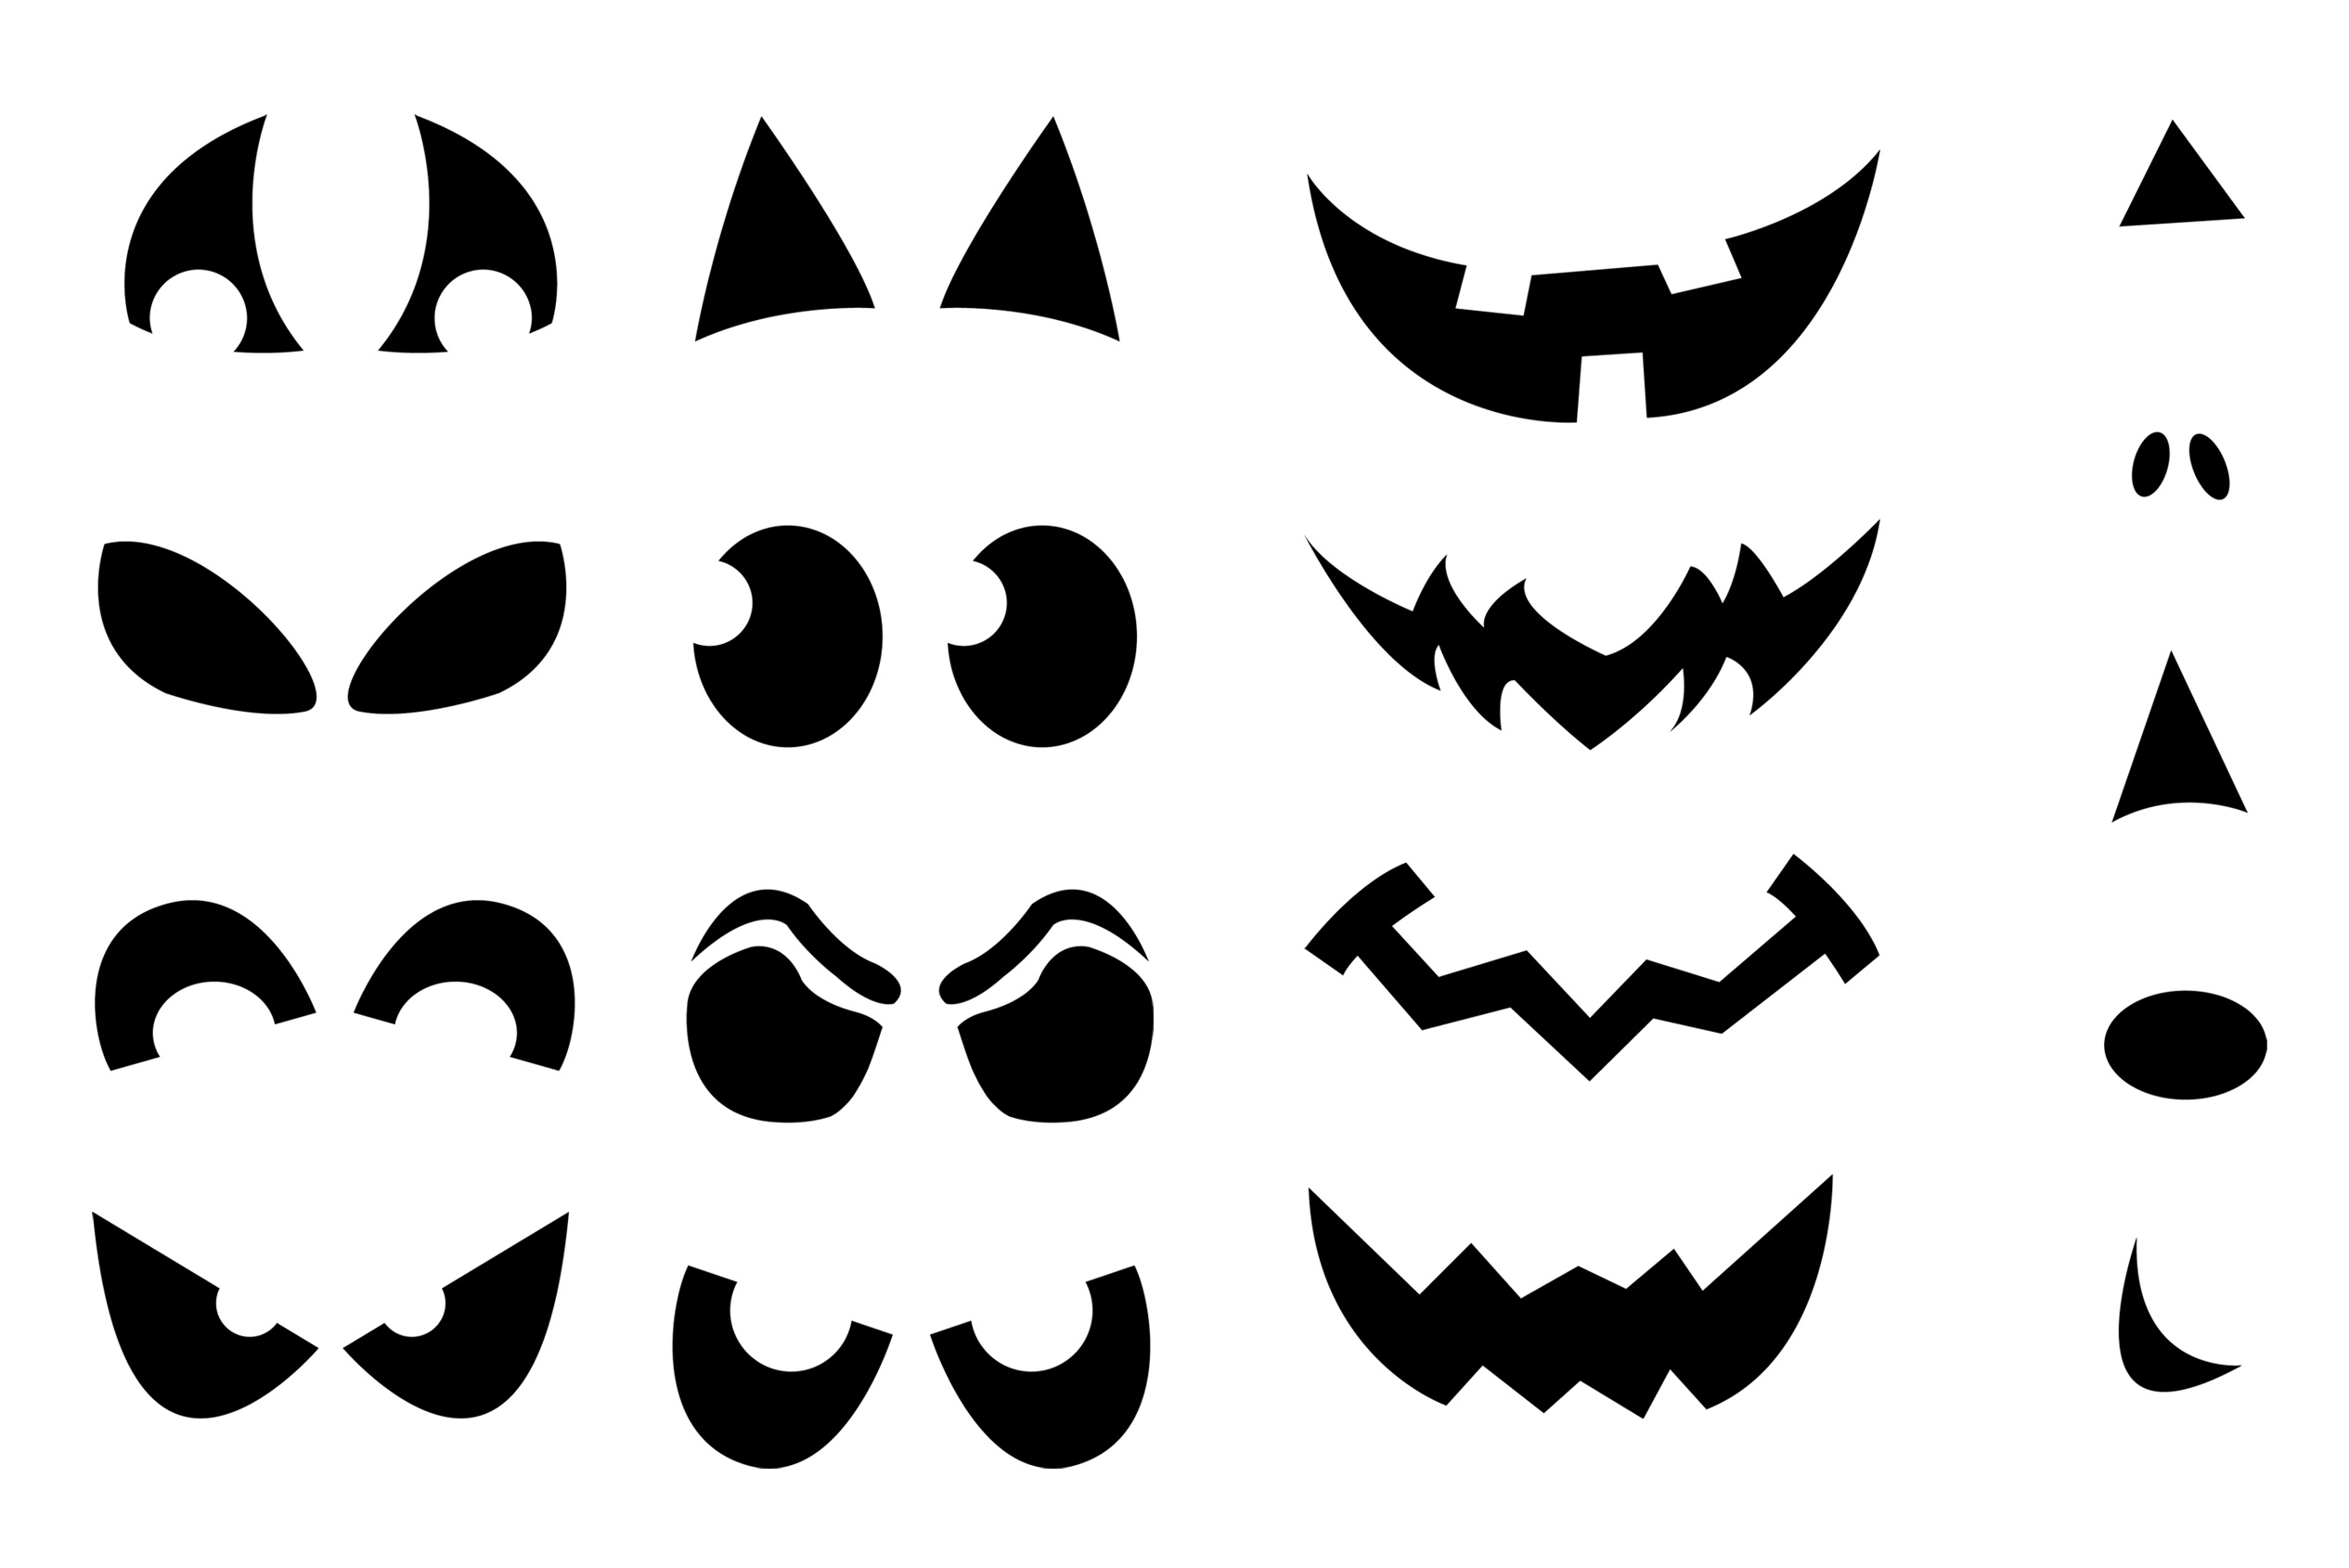 Jack-O'-Lantern Shirt Stencils | Craft Buds - Jack O Lantern Patterns Free Printable